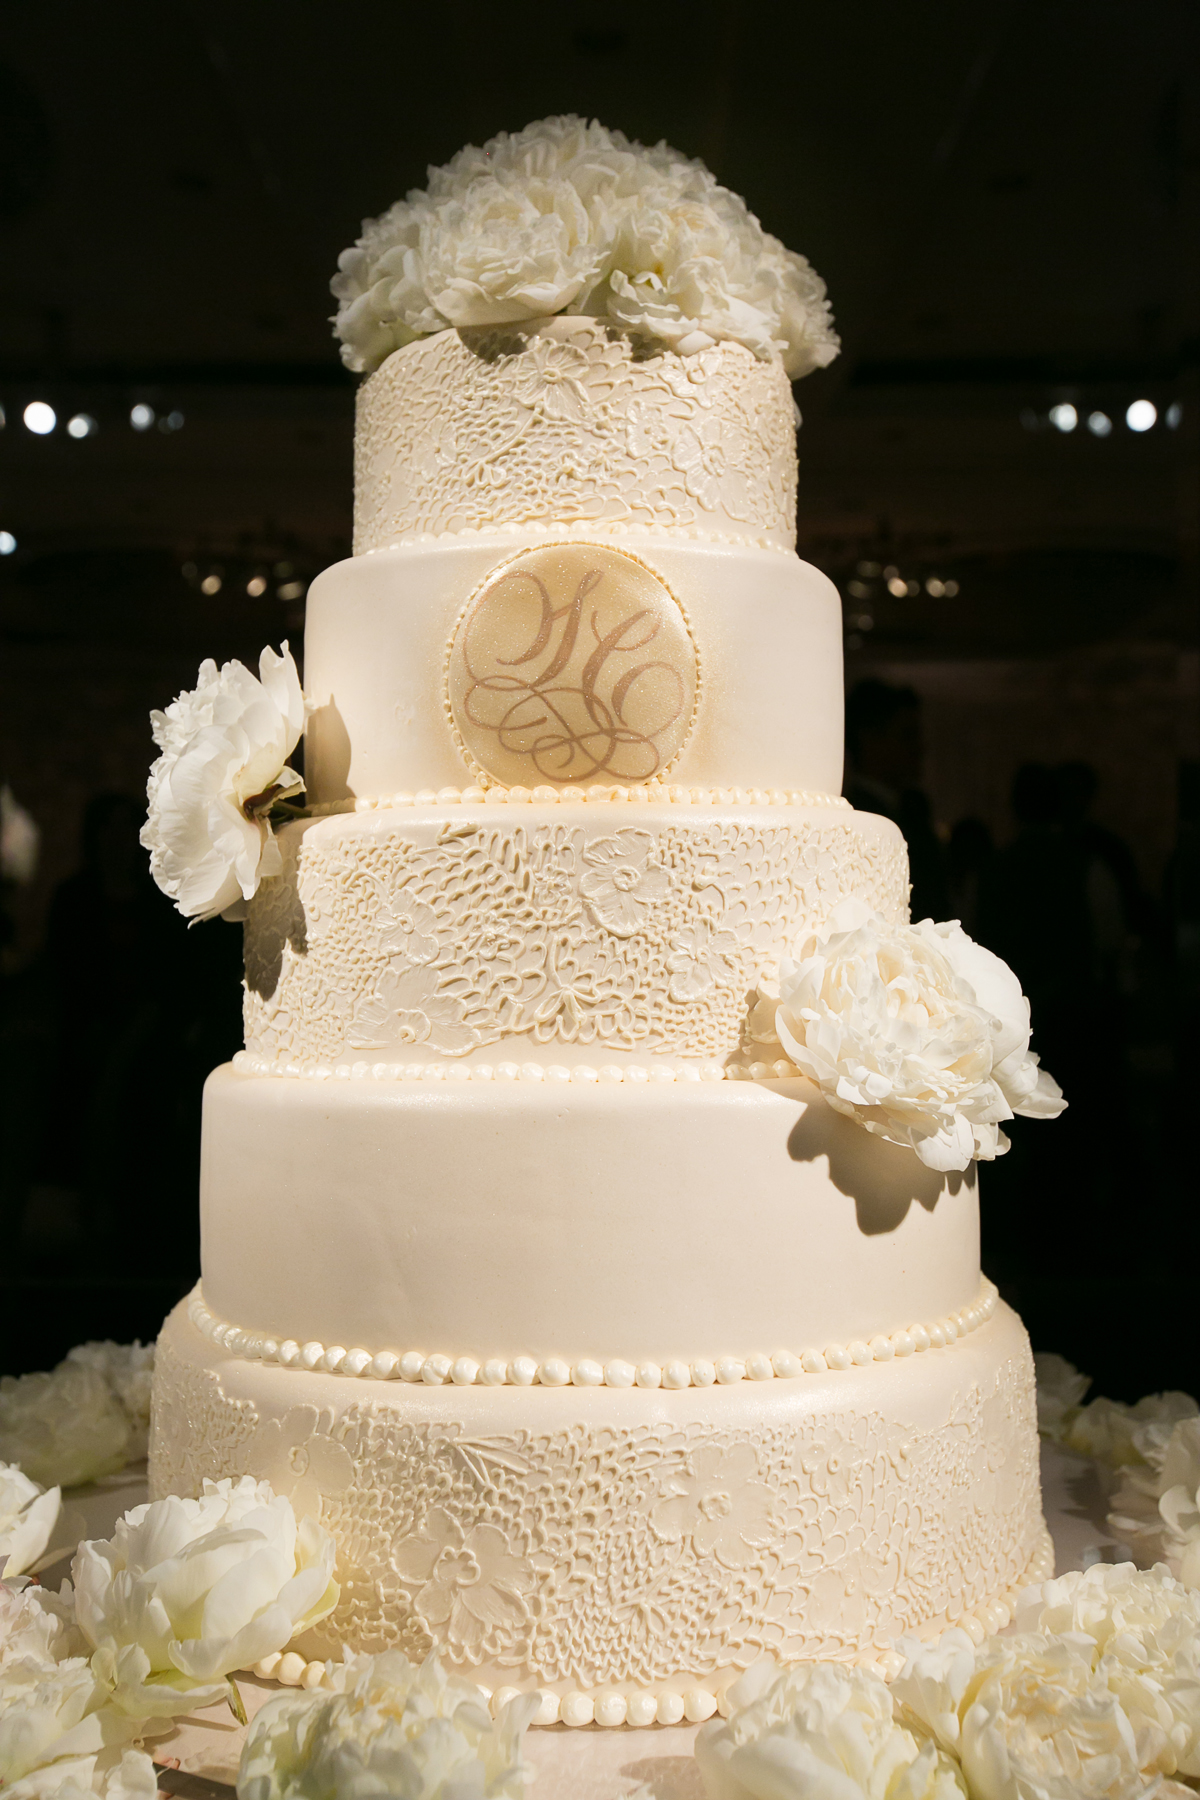 wedding cakes pretty wedding confections with lace patterns inside